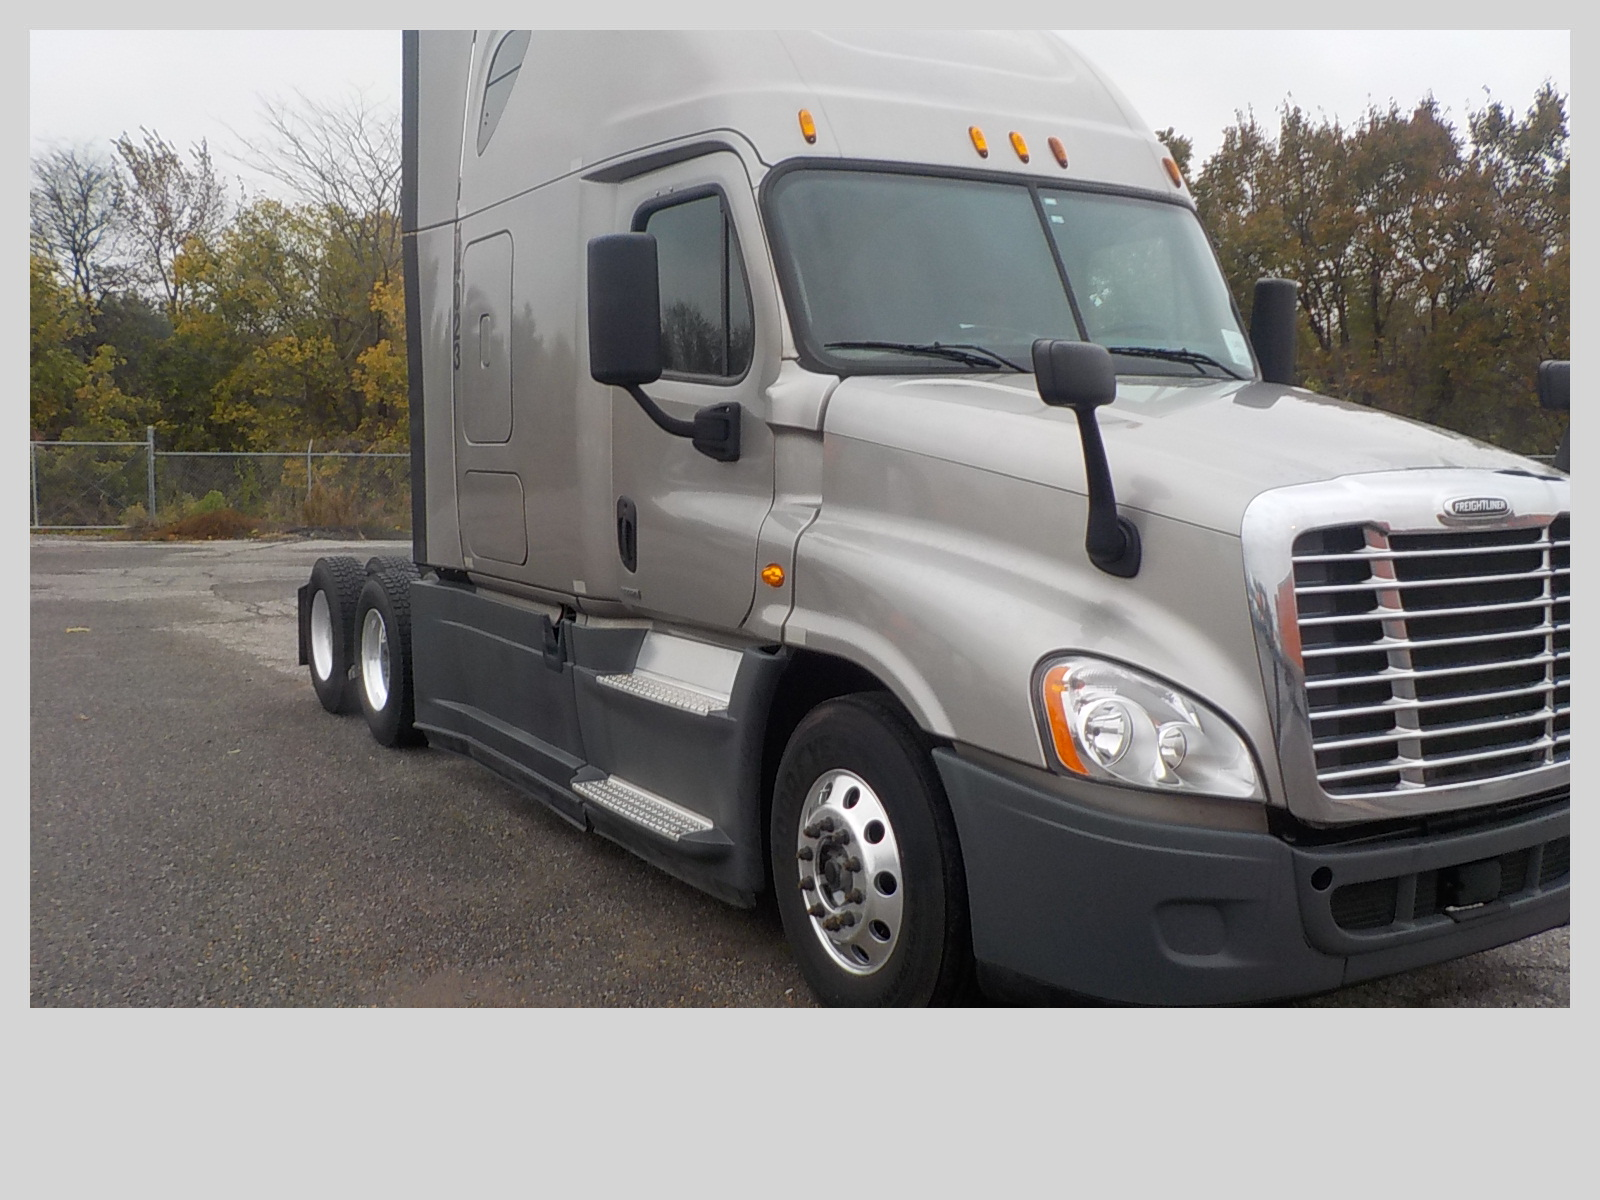 USED 2015 FREIGHTLINER CASCADIA SLEEPER TRUCK #135984